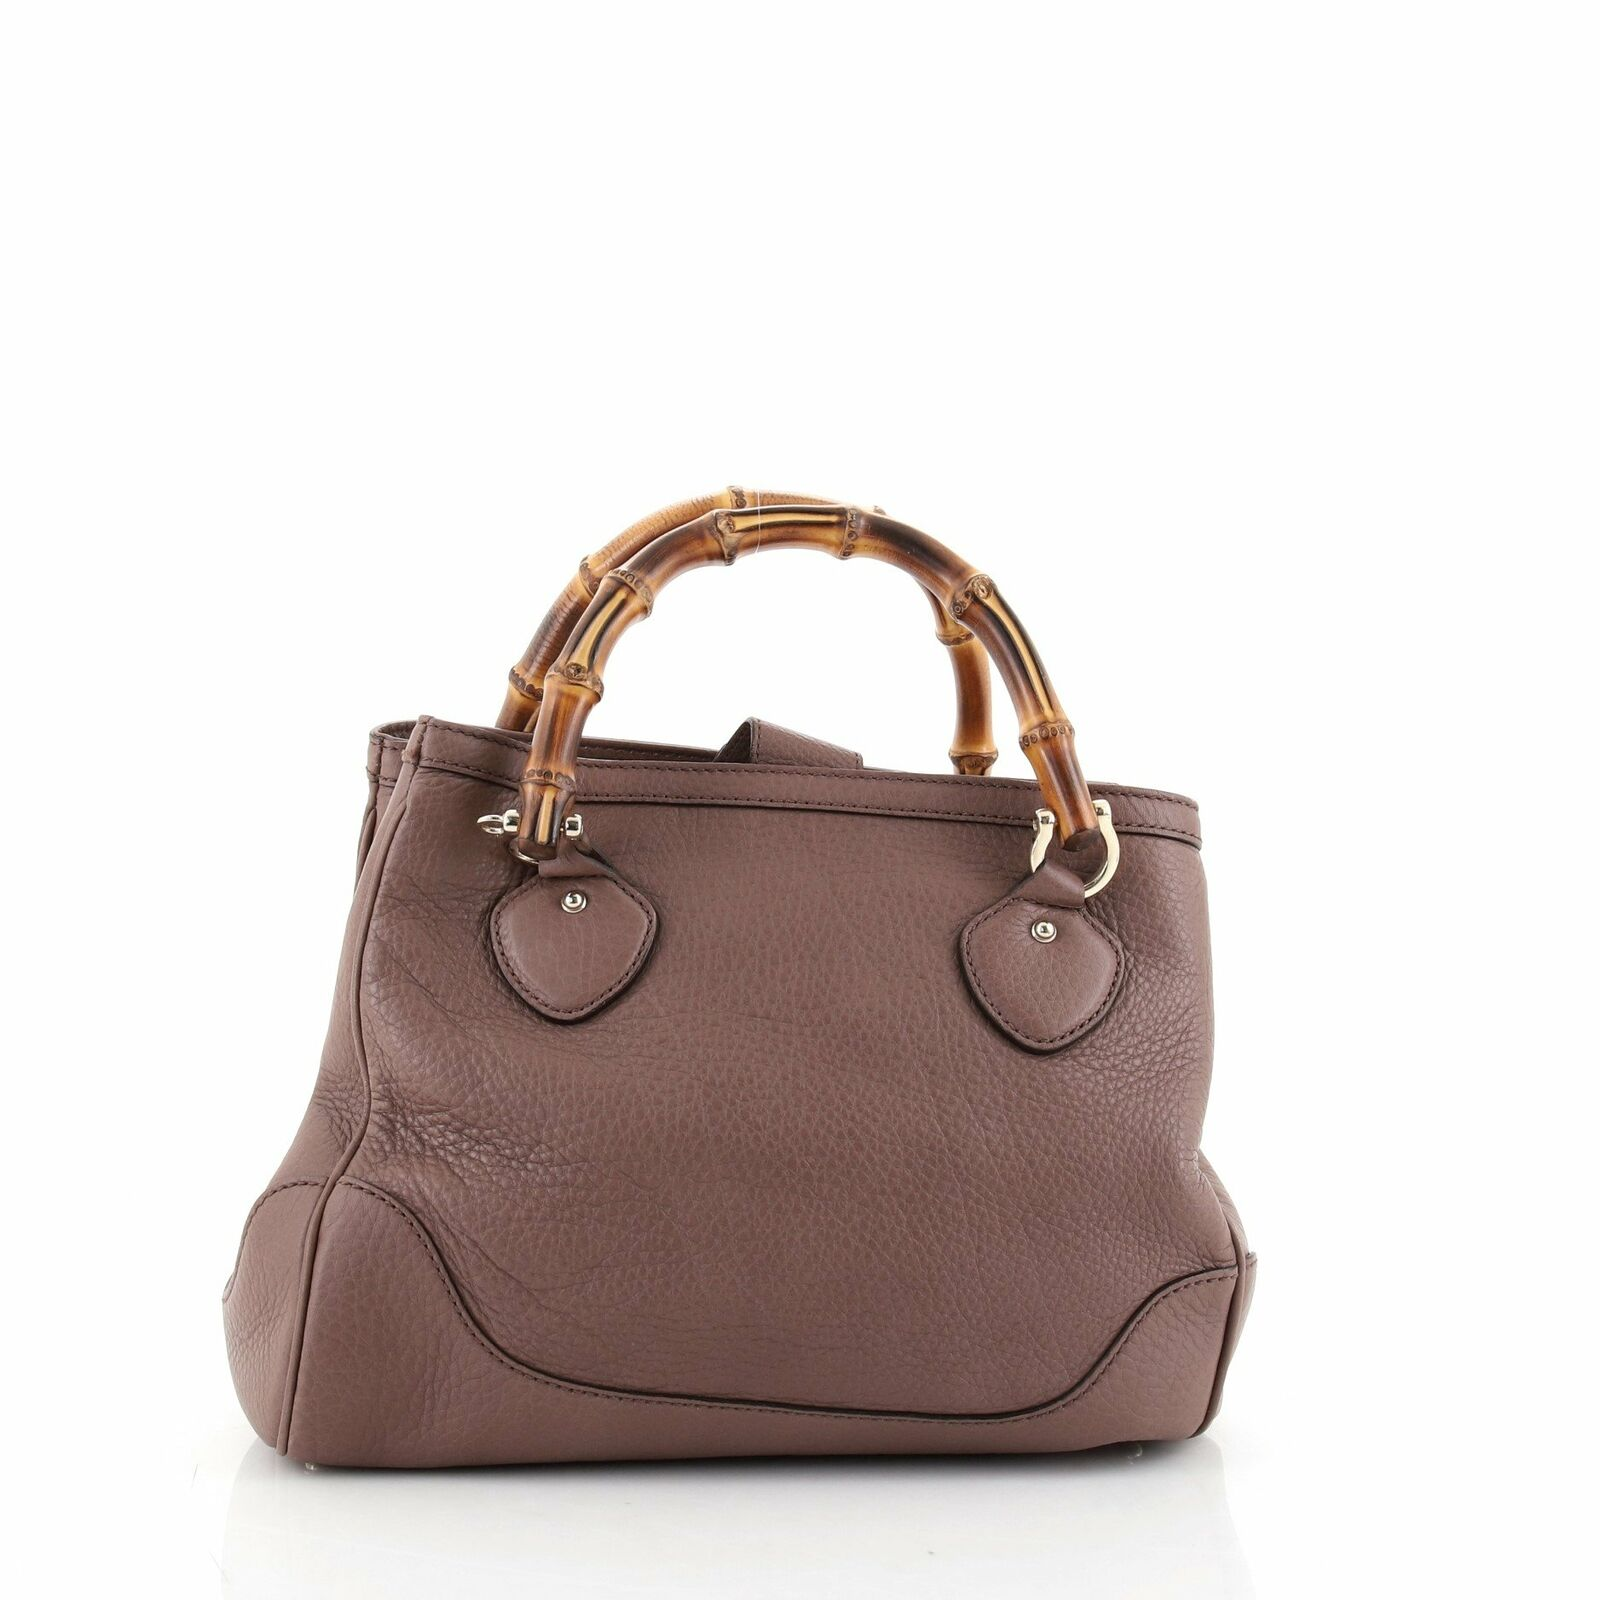 Gucci Diana Bamboo Top Handle Tote Leather Small - image 3